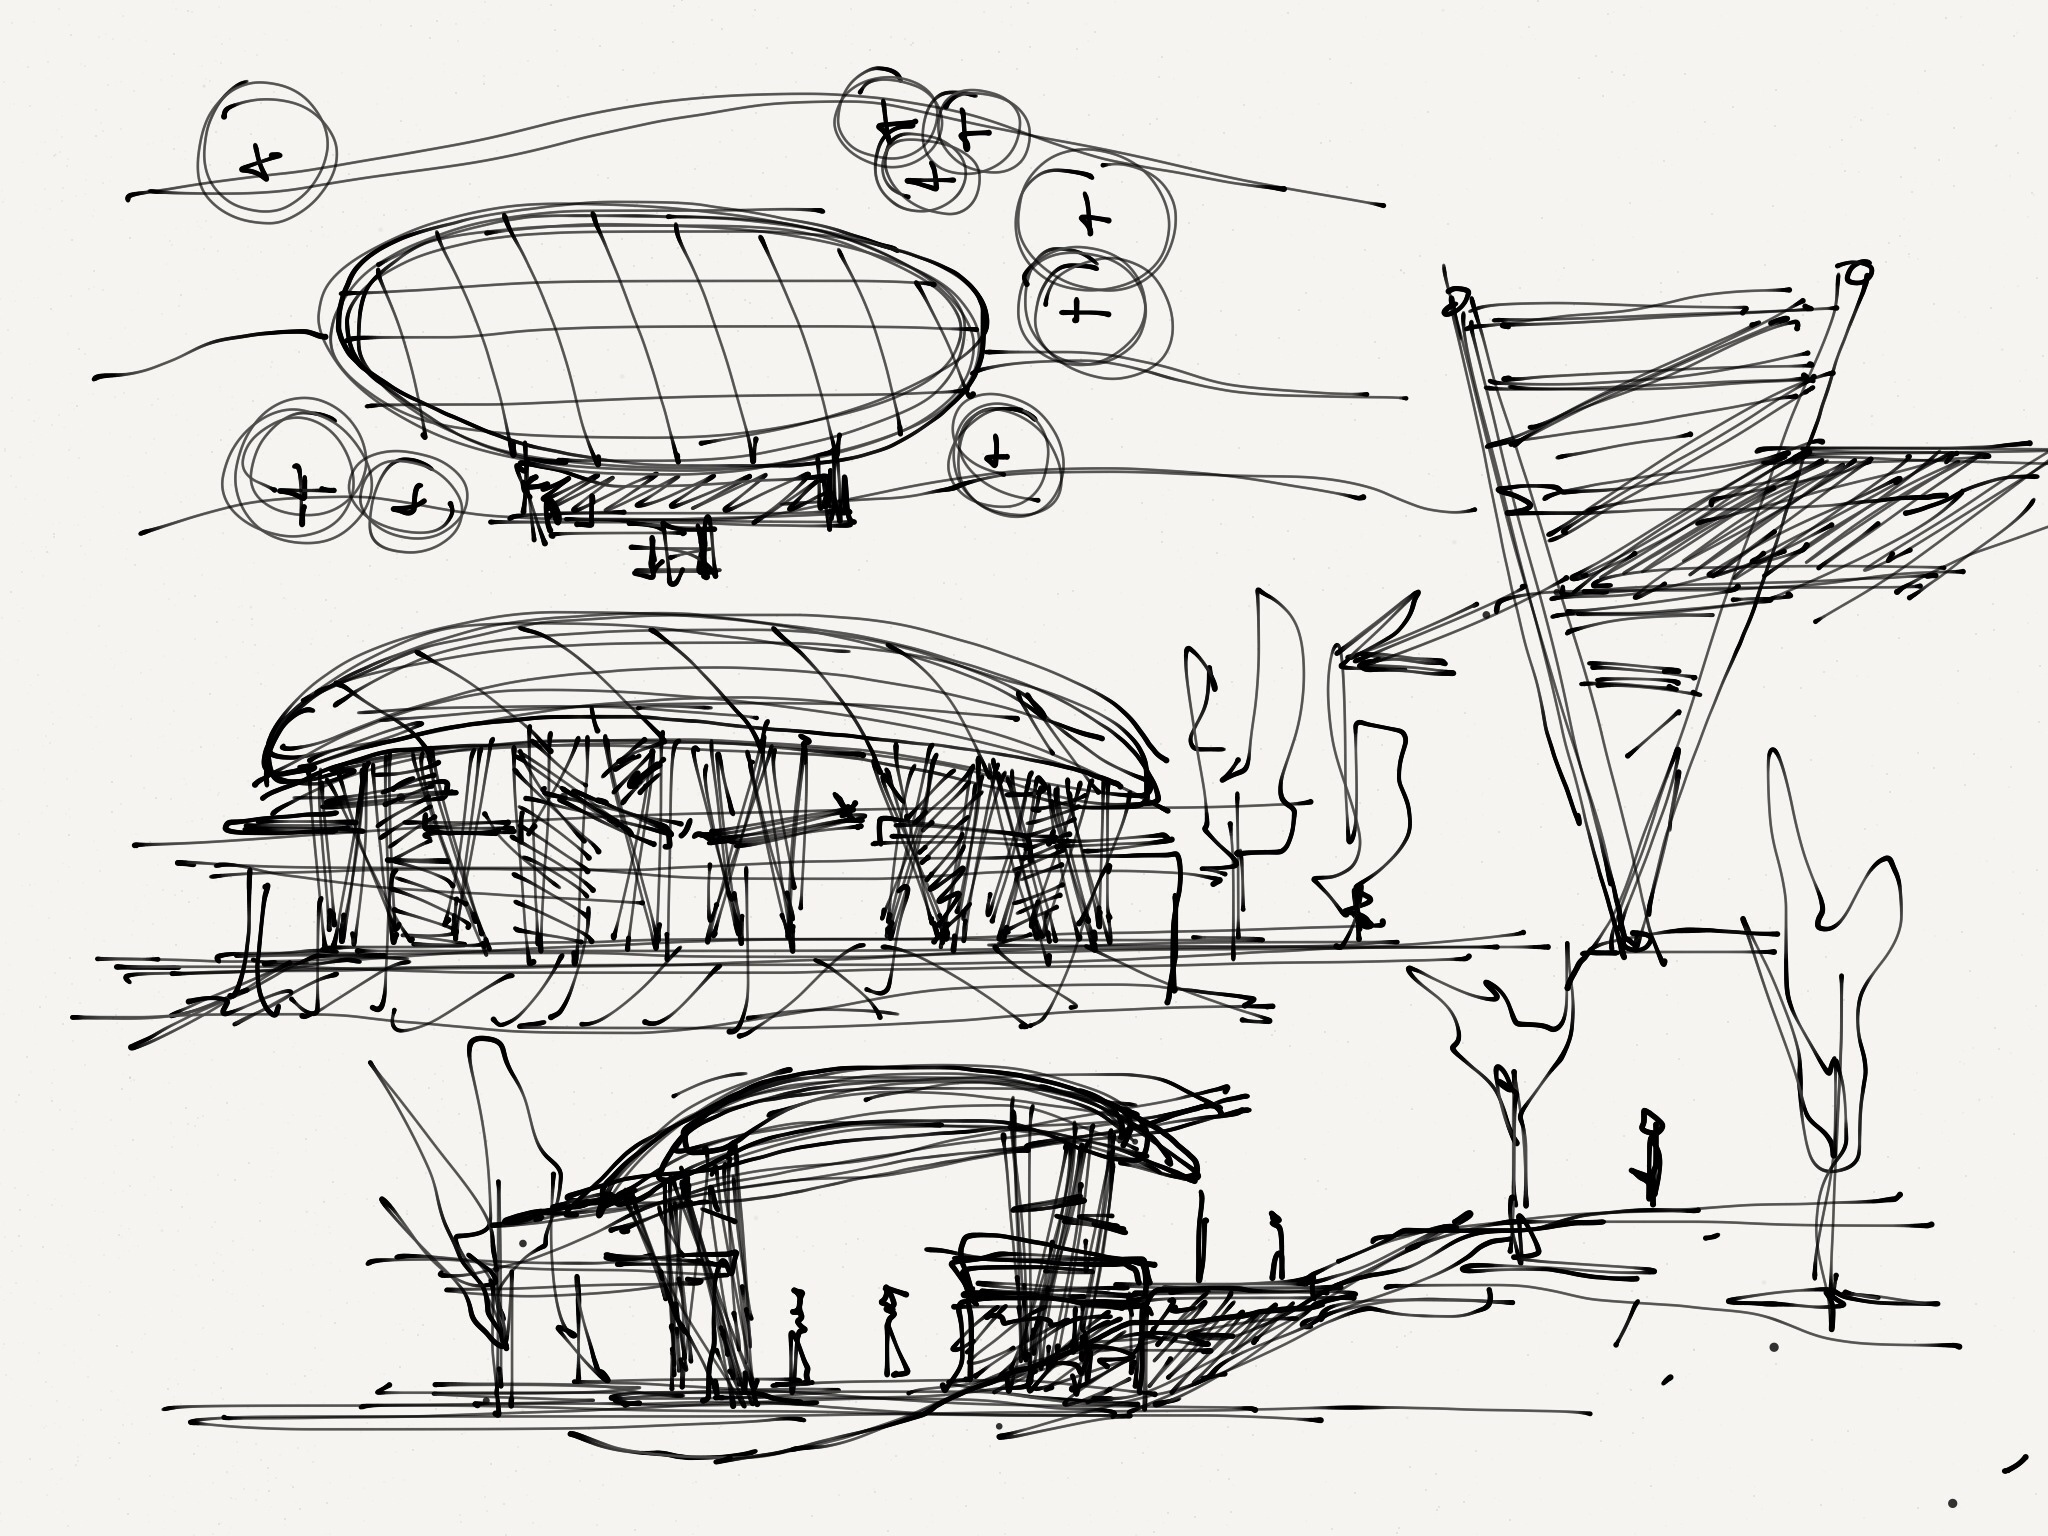 Alg miscellaneous architecture concept sketches for Modern architecture concept